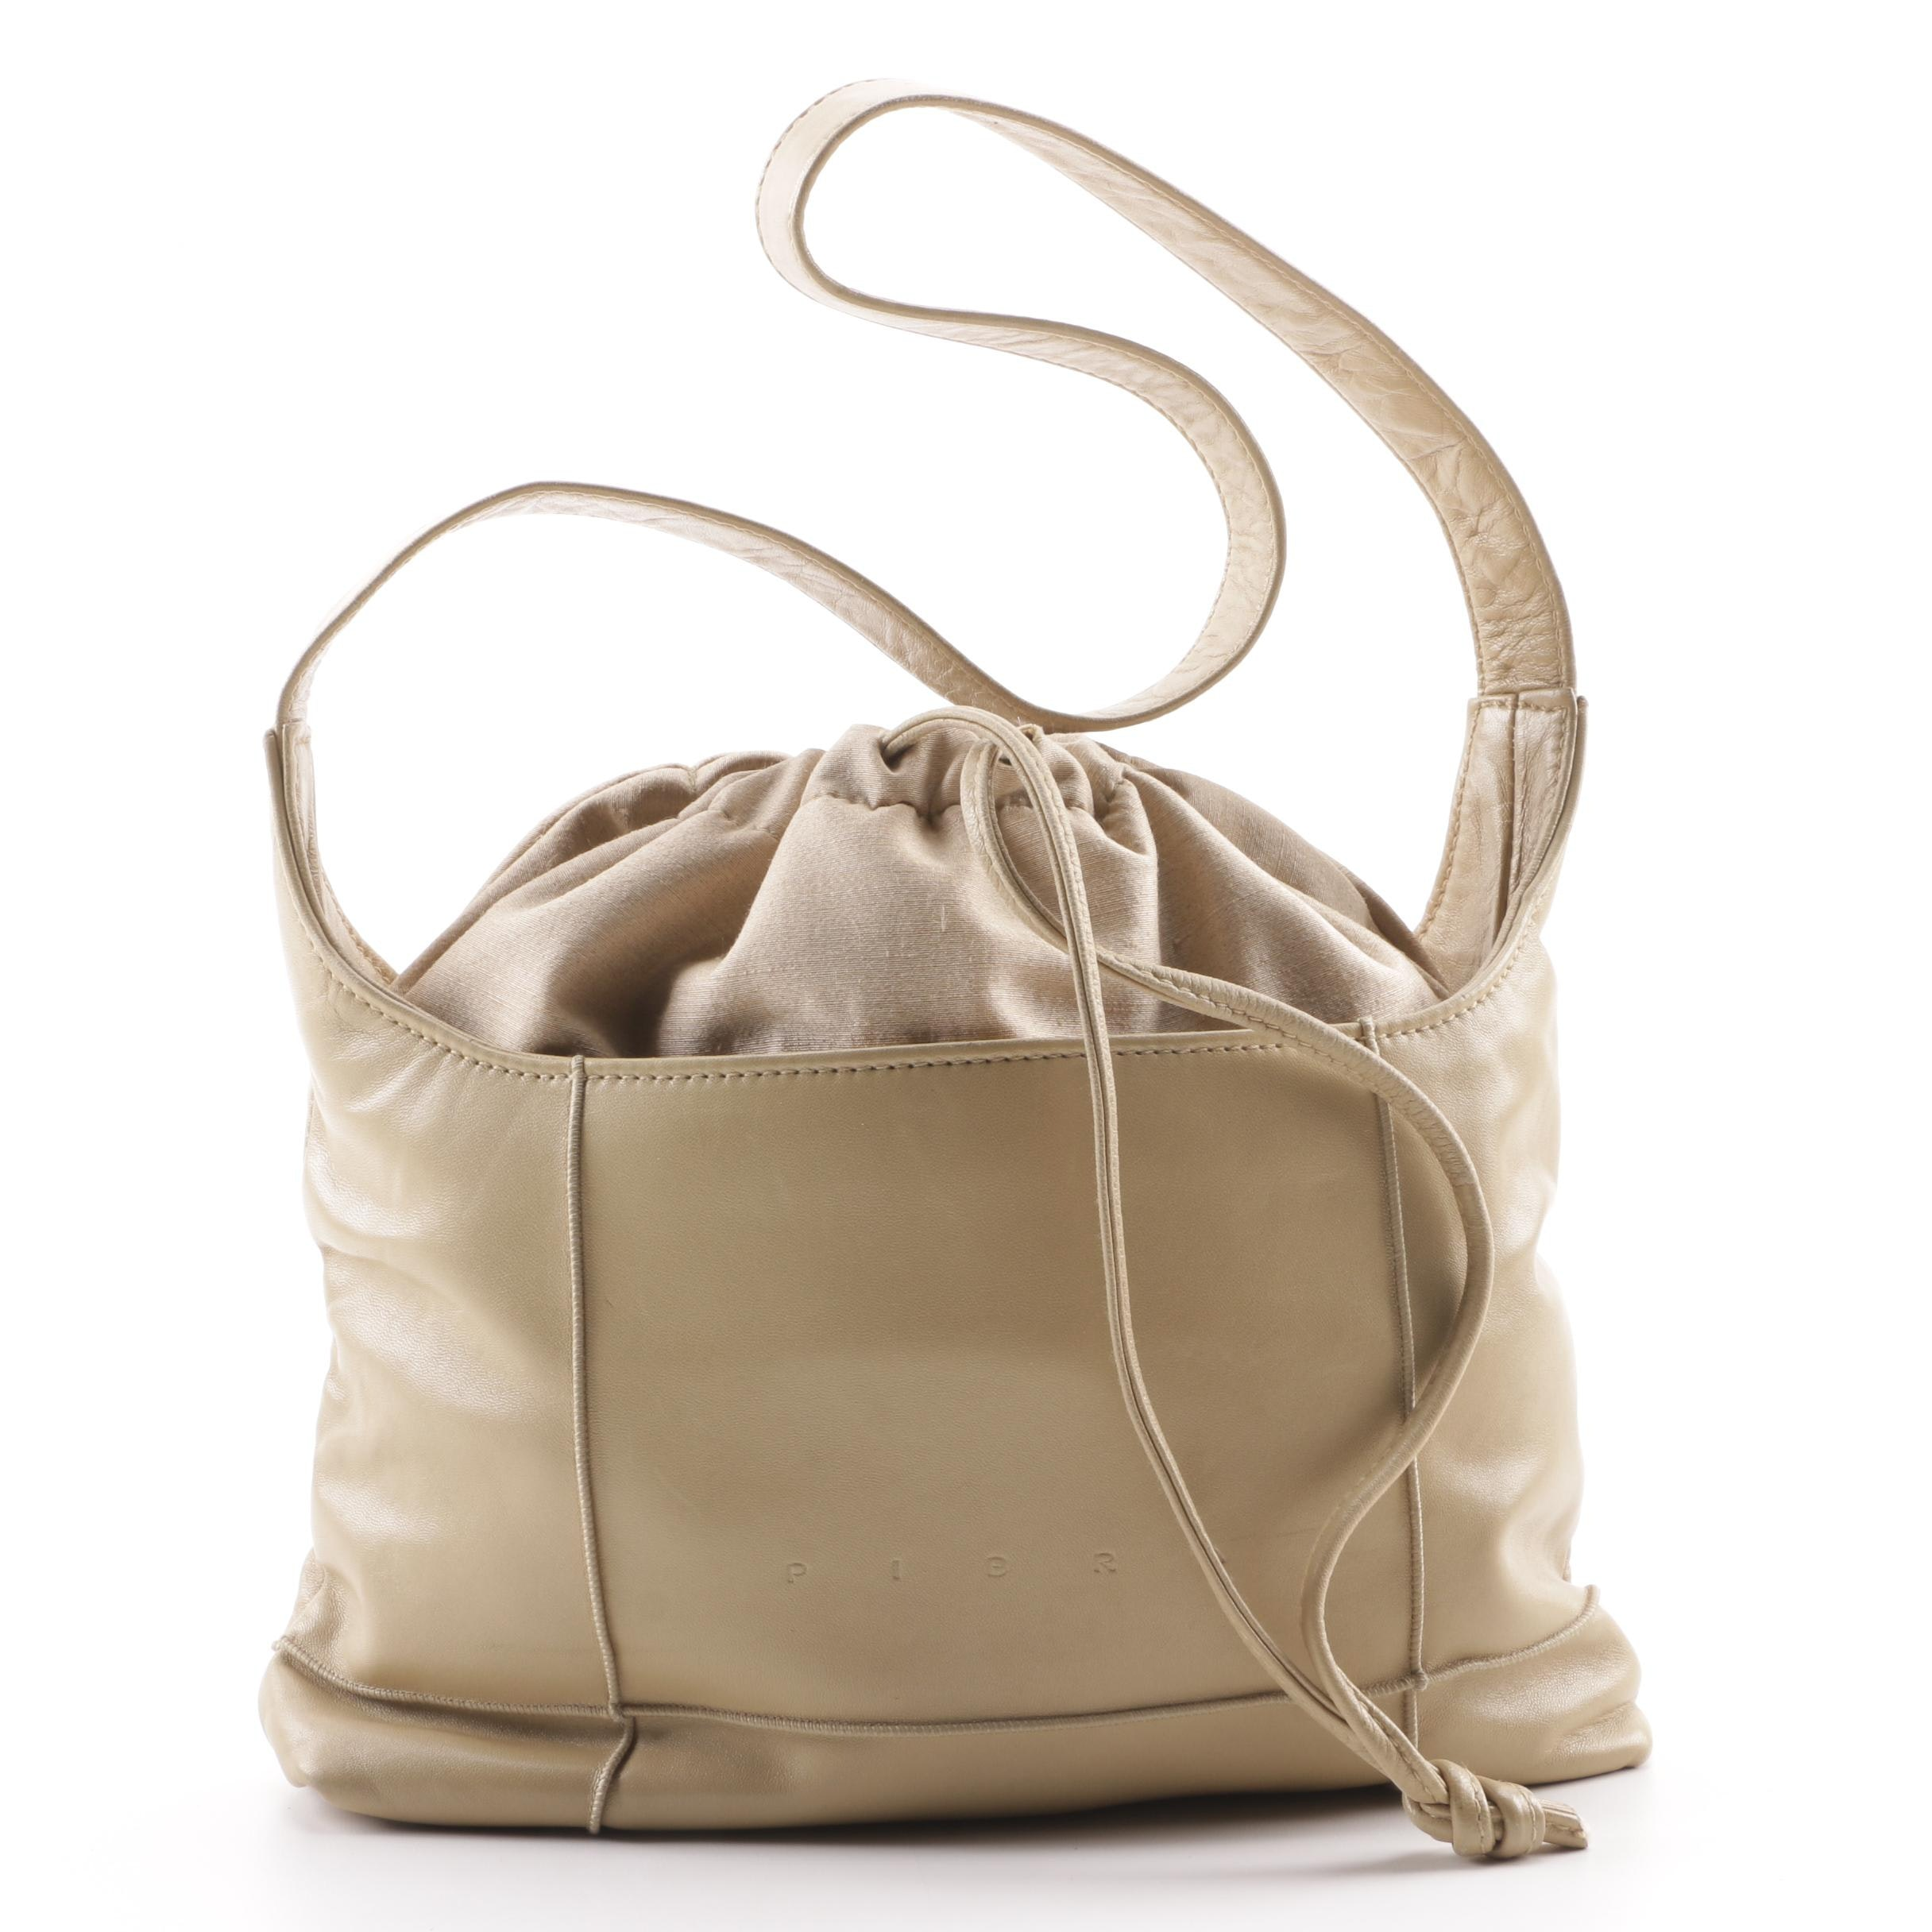 Pibra Beige Leather and Textile Drawstring Hobo Shoulder Bag, Made in Italy